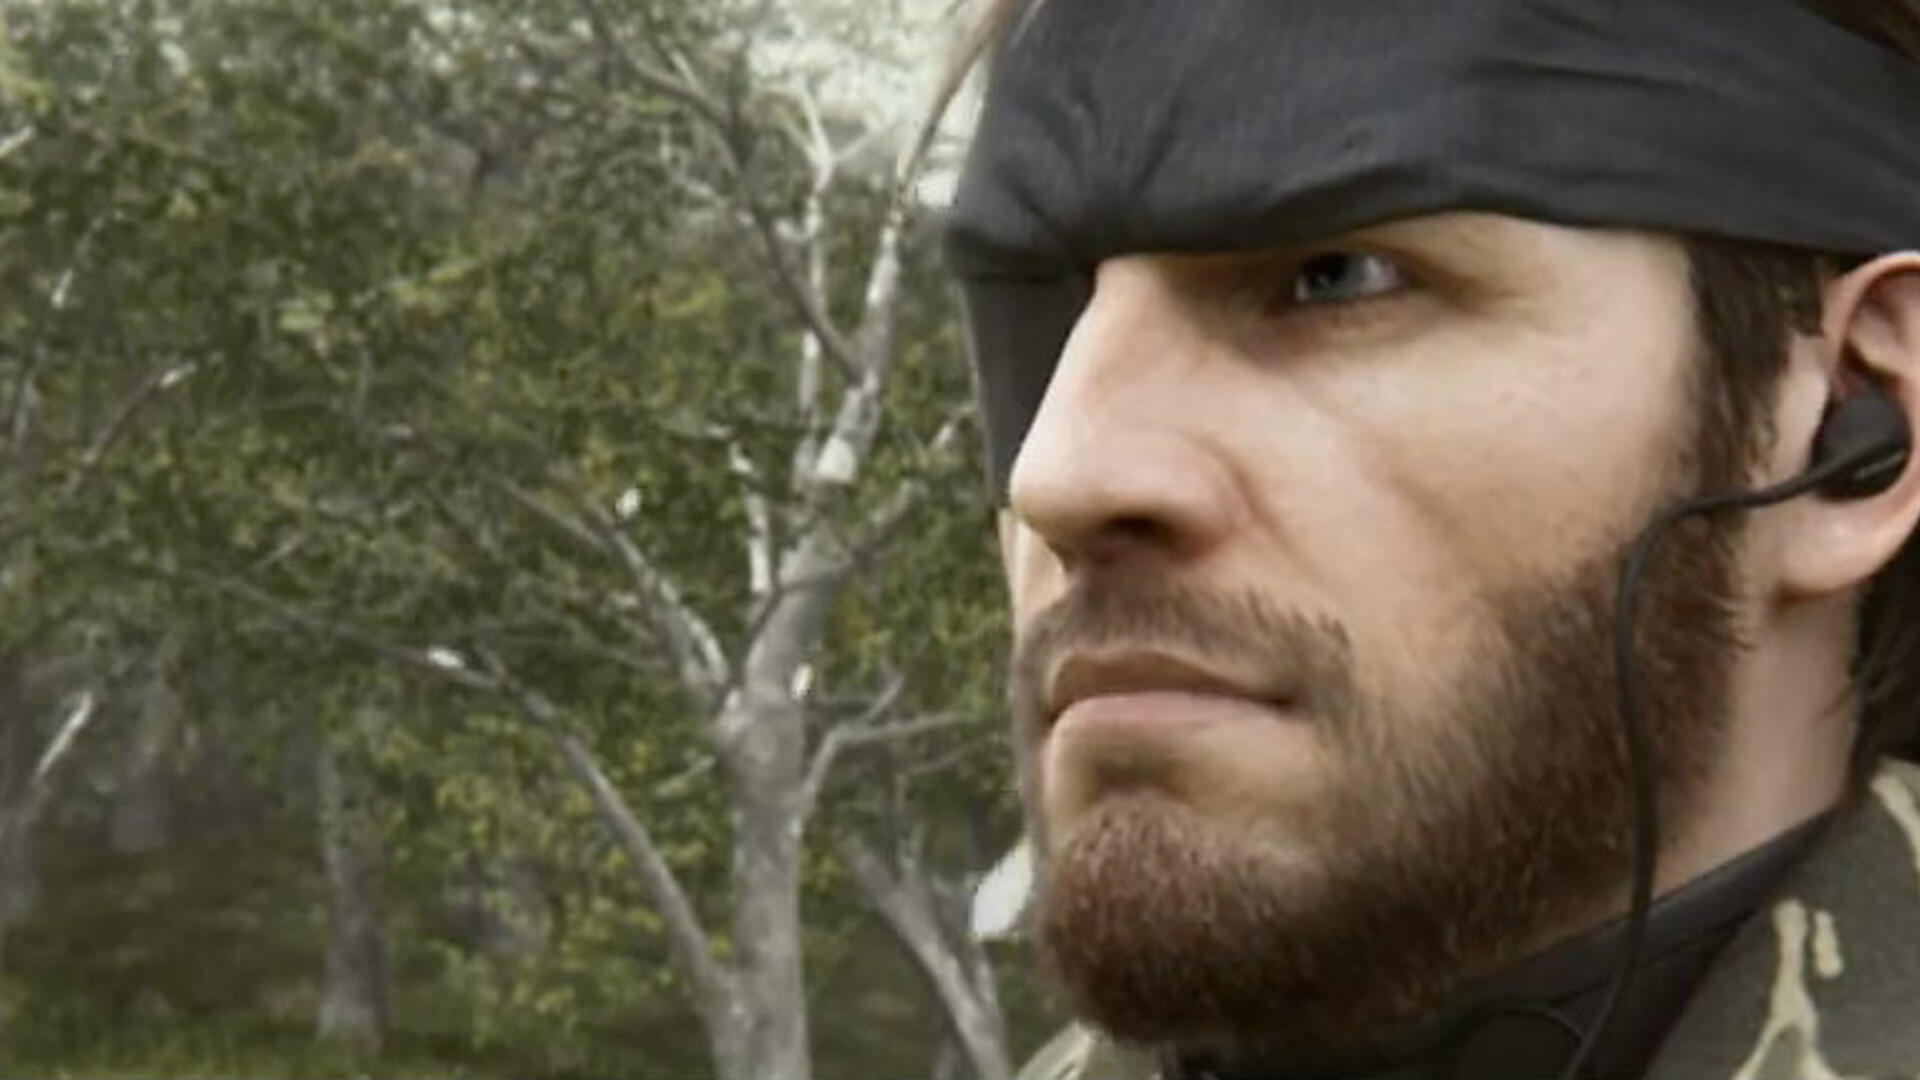 Metal Gear Solid 3 Pachinko Illustrates How Konami's Business Decisions Are Uniquely Cold